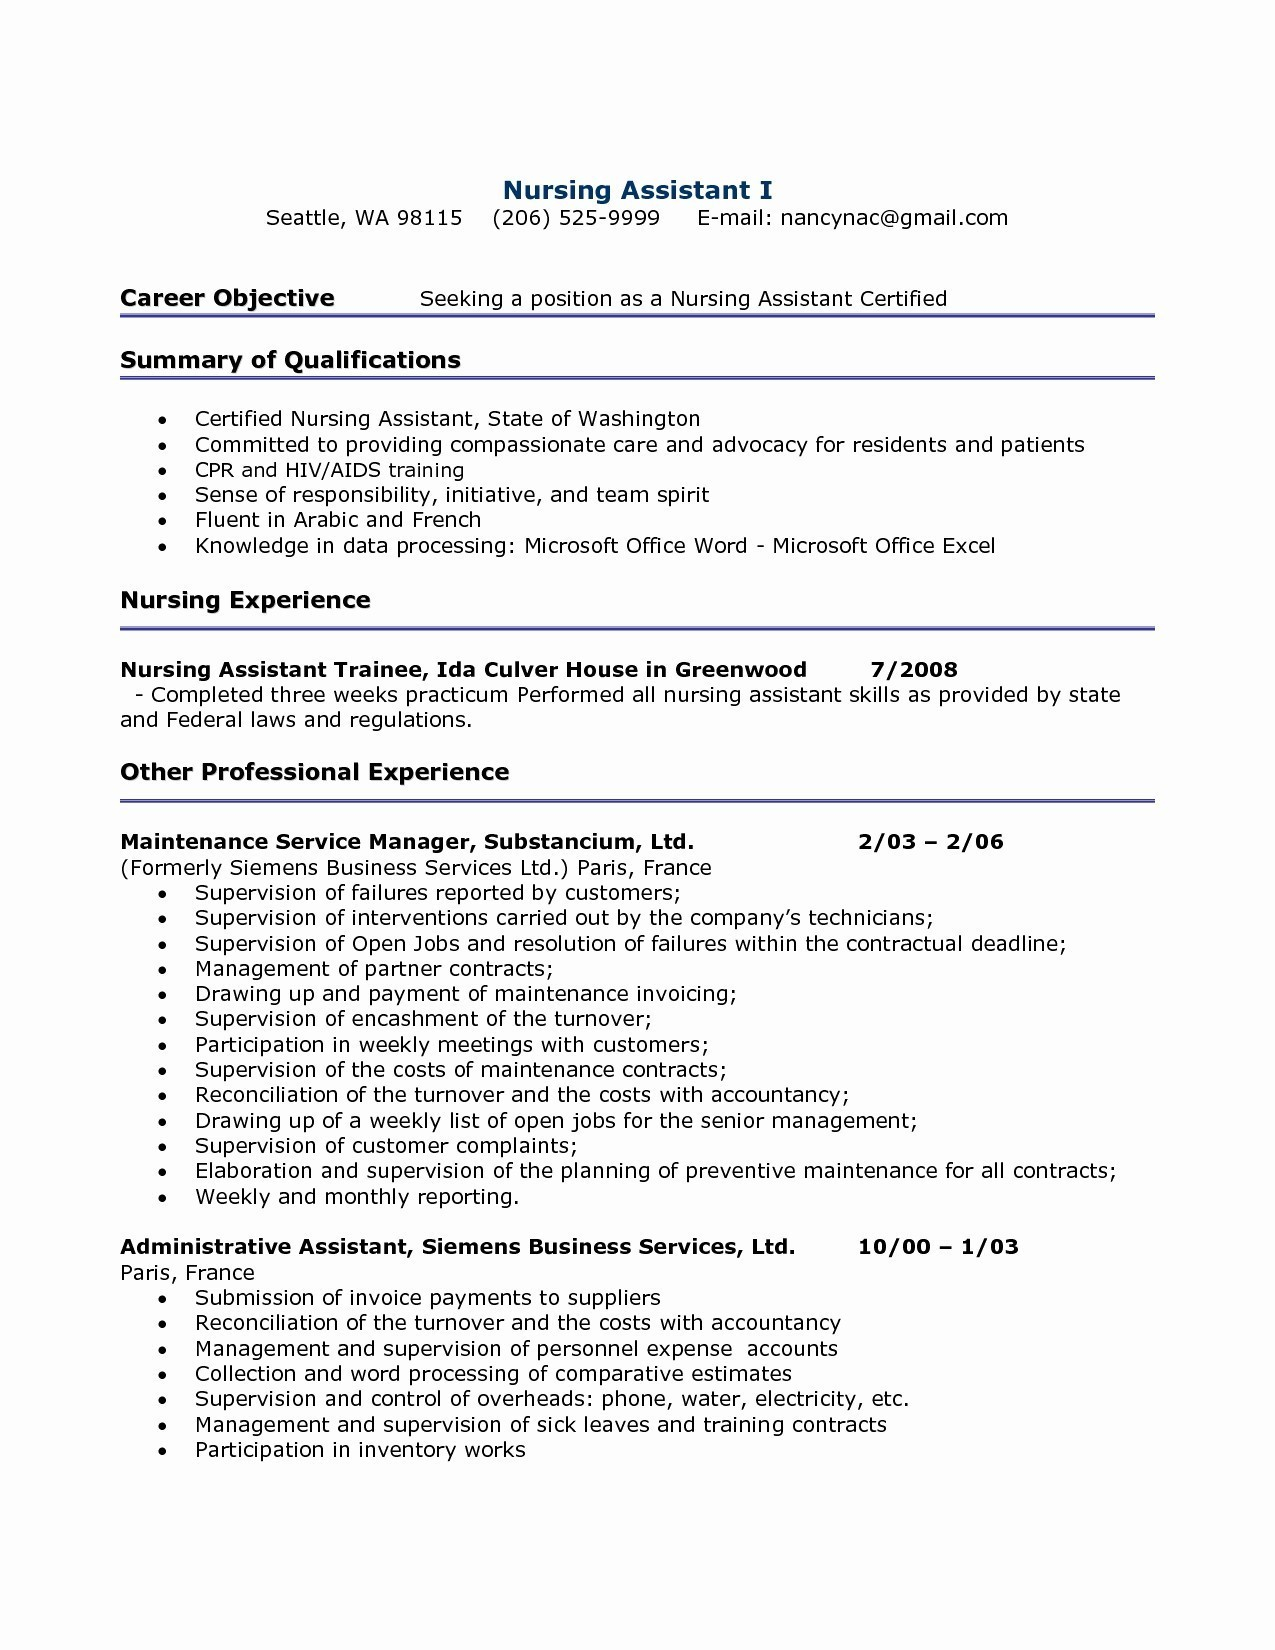 Resume Cover Letter Template - Fice Resume Templates Unique Resume New Cover Letter Template